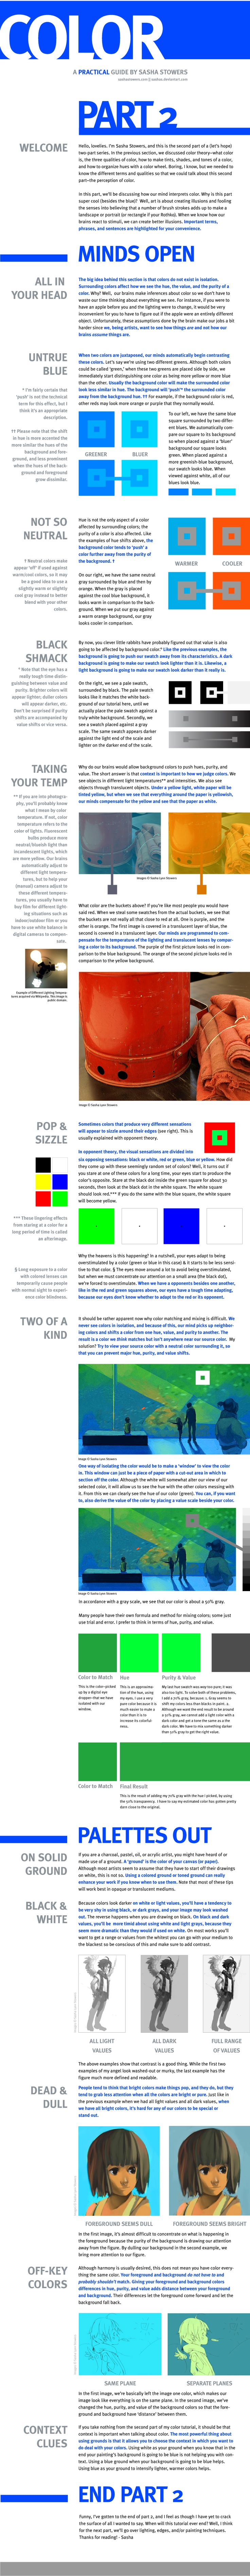 The Color Tutorial - Part 2 by ~sashas on deviantART